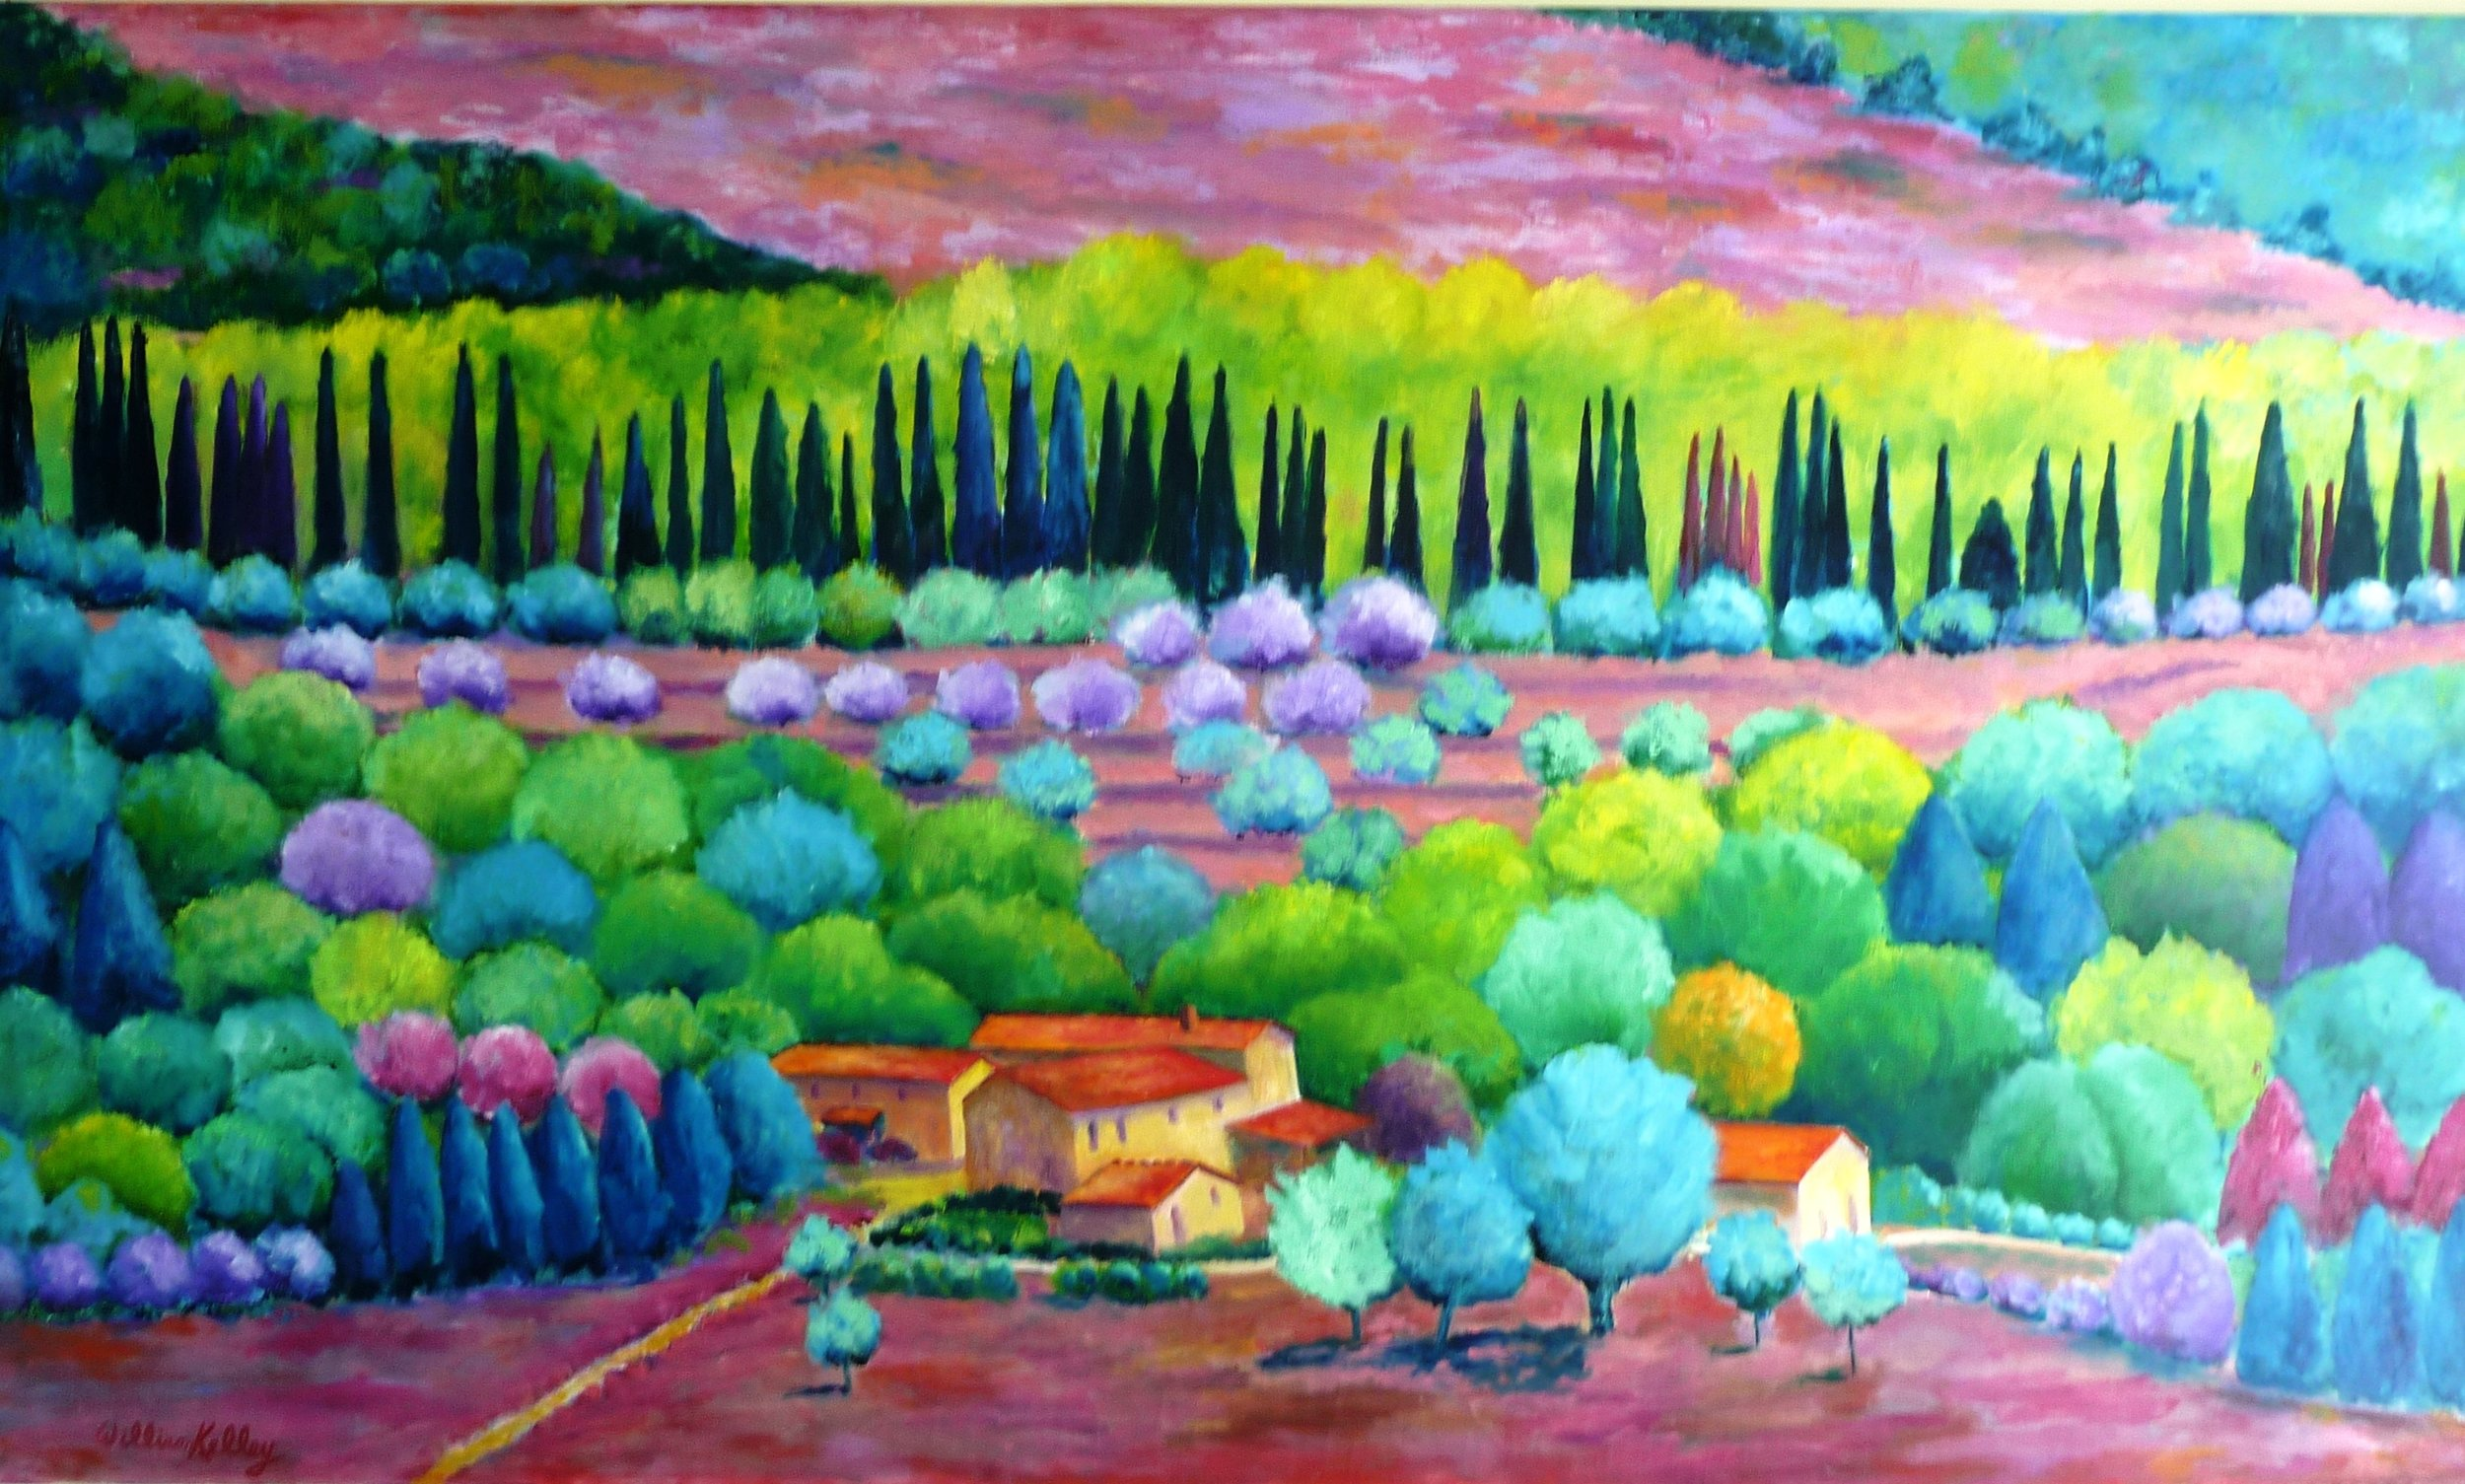 Monteriggioni - Sarasota Herald Tribune - Painter William Kelley's quest for beauty. The Tribune interviewed William after his accident and his work with the Sarasota Art Society and Florida Winefest. To read the full Tribune article click the image to the left or Click Here.